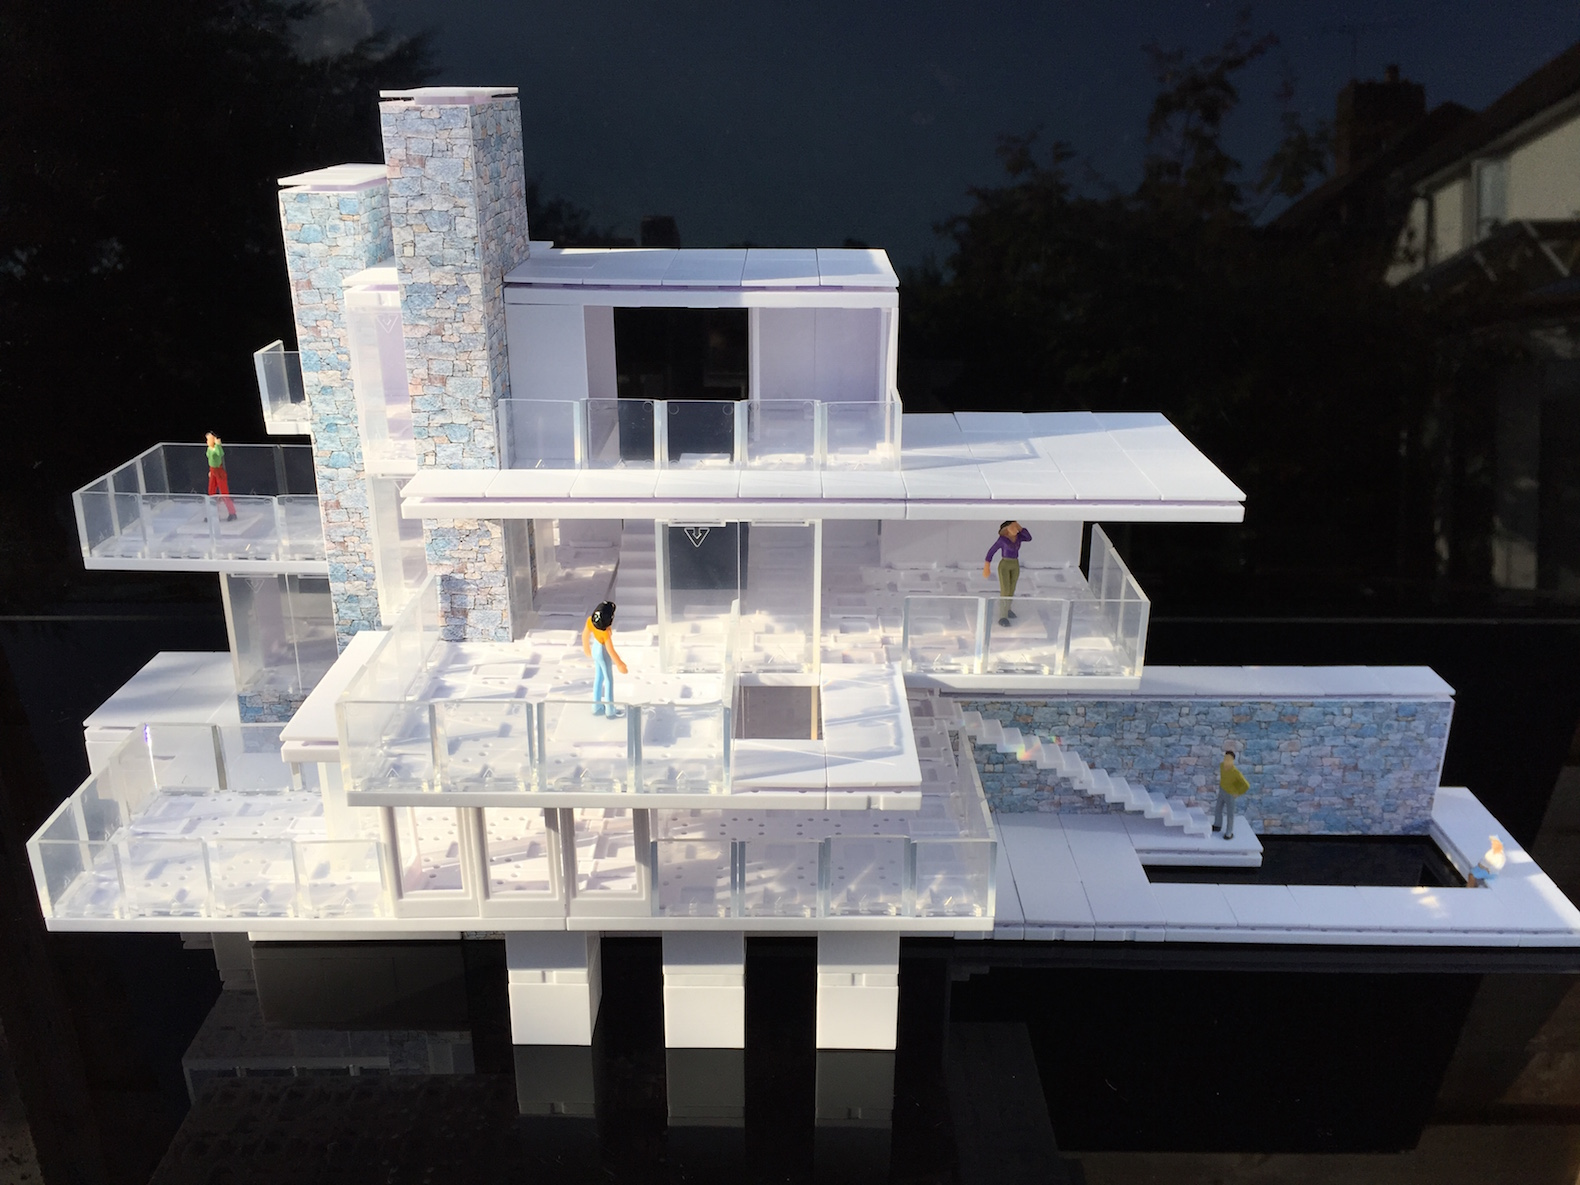 Architectural Model Building Kits - 0425